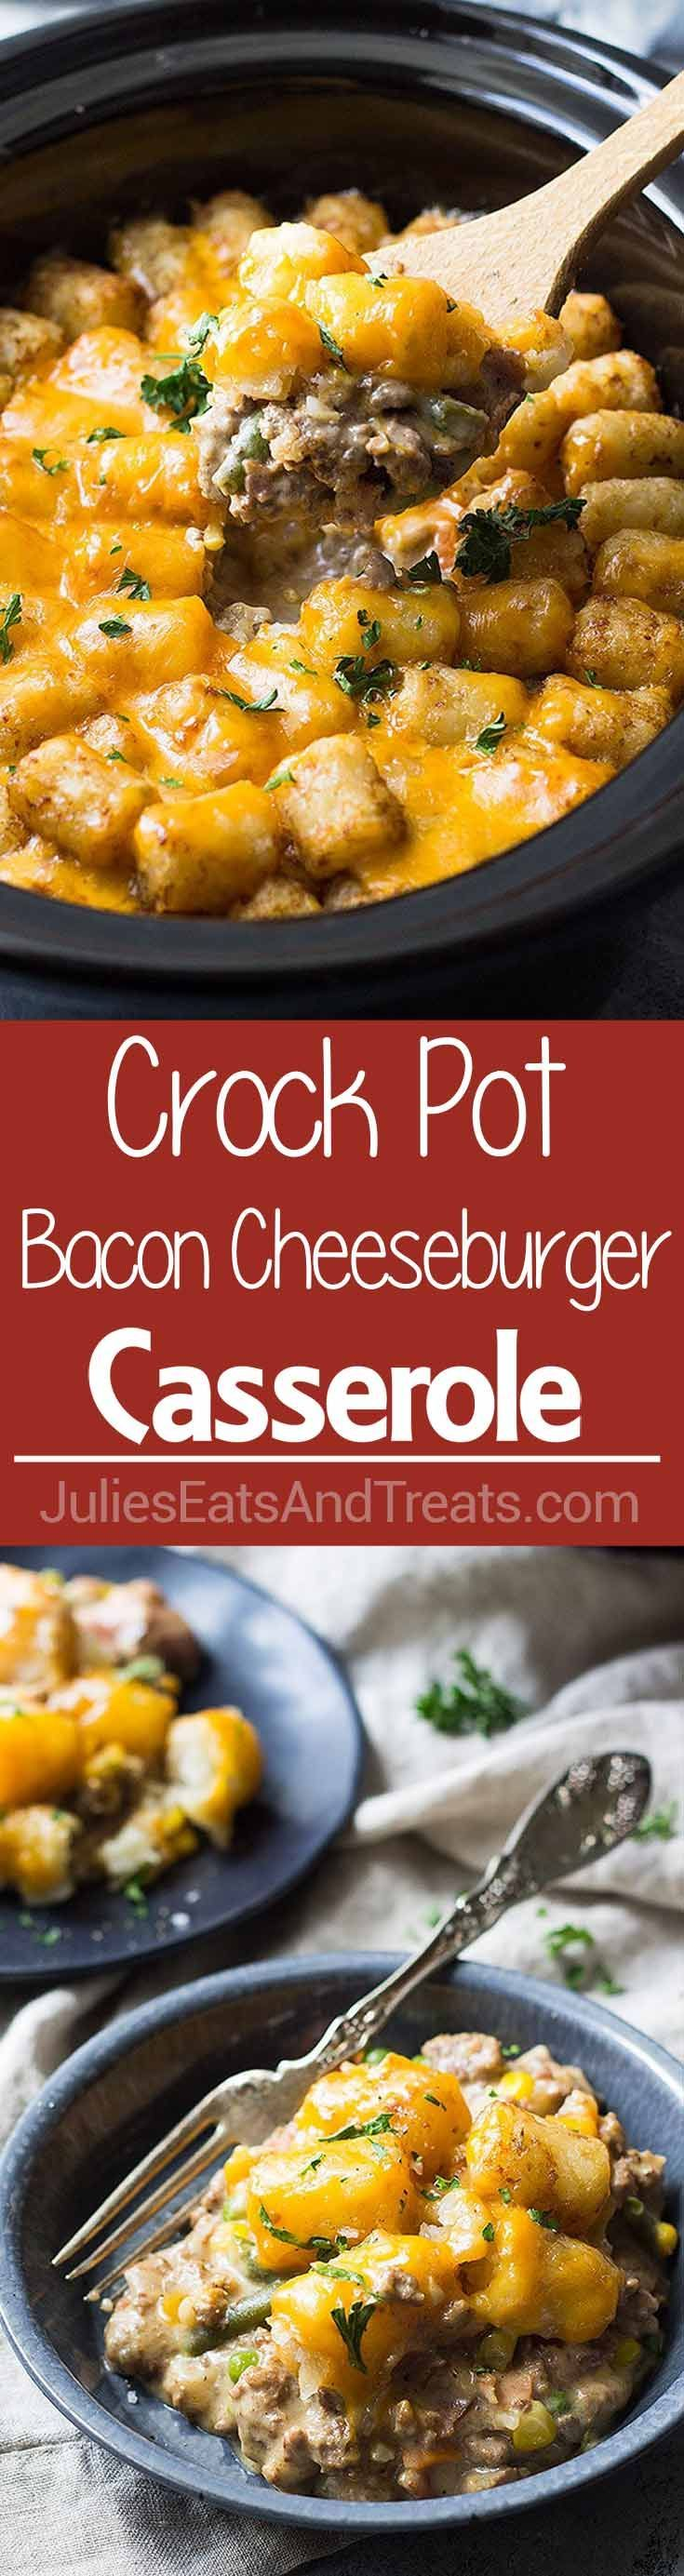 Crock Pot Bacon Cheeseburger Tater Tot Casserole ~ Easy Slow Cooker Twist on a Classic Tater Tot Casserole!  It's creamy, cheesy and comfort food made easy! via @julieseats